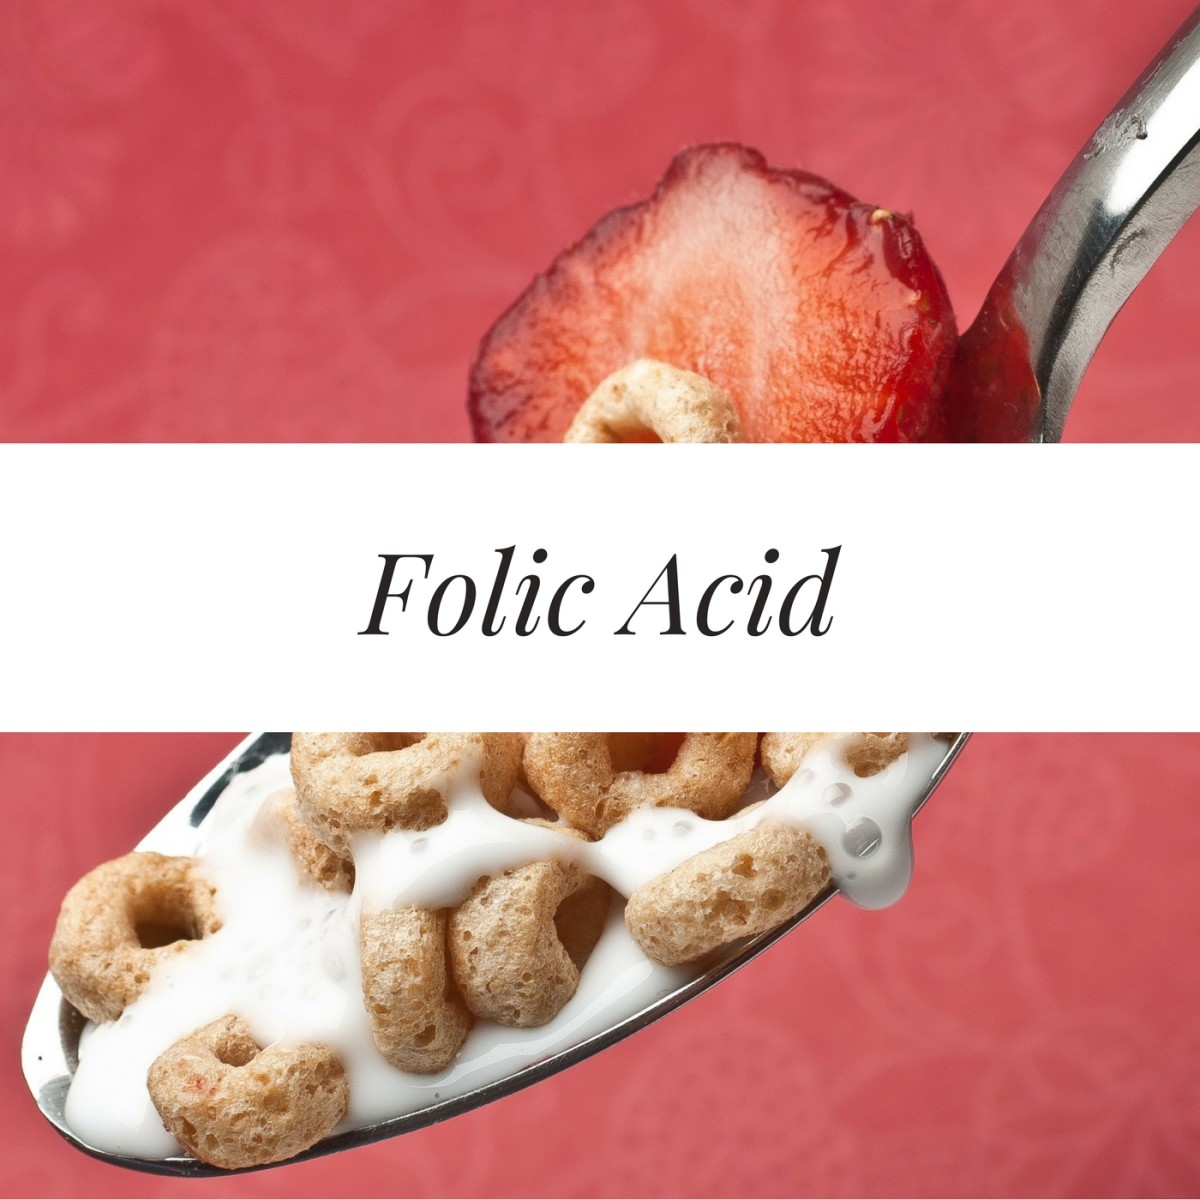 Breakfast cereal is a great source of folic acid.